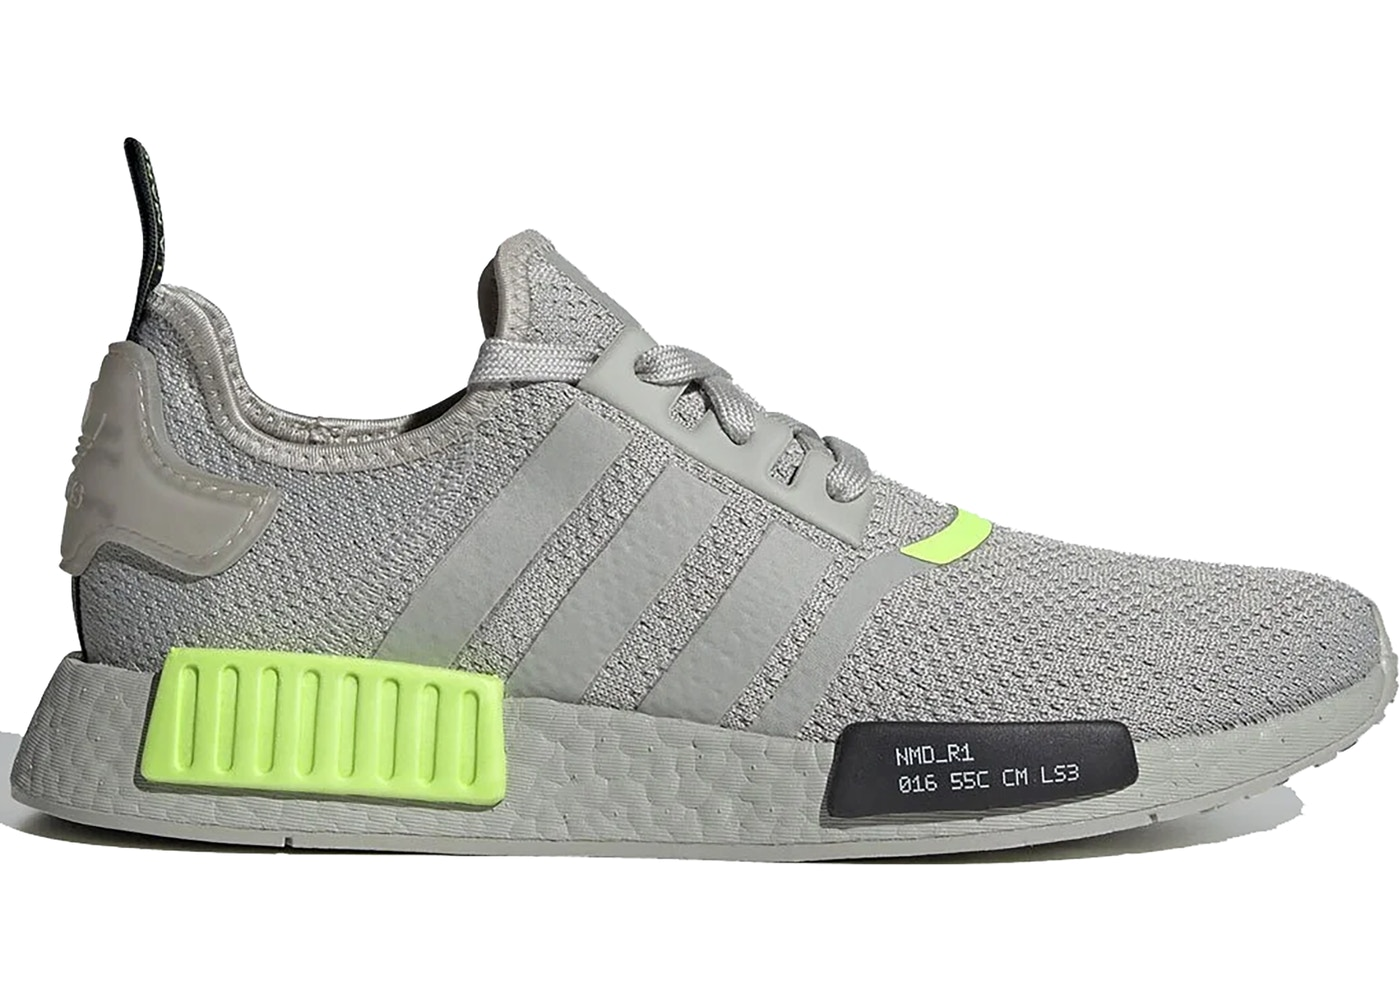 grey adidas shoes mnds